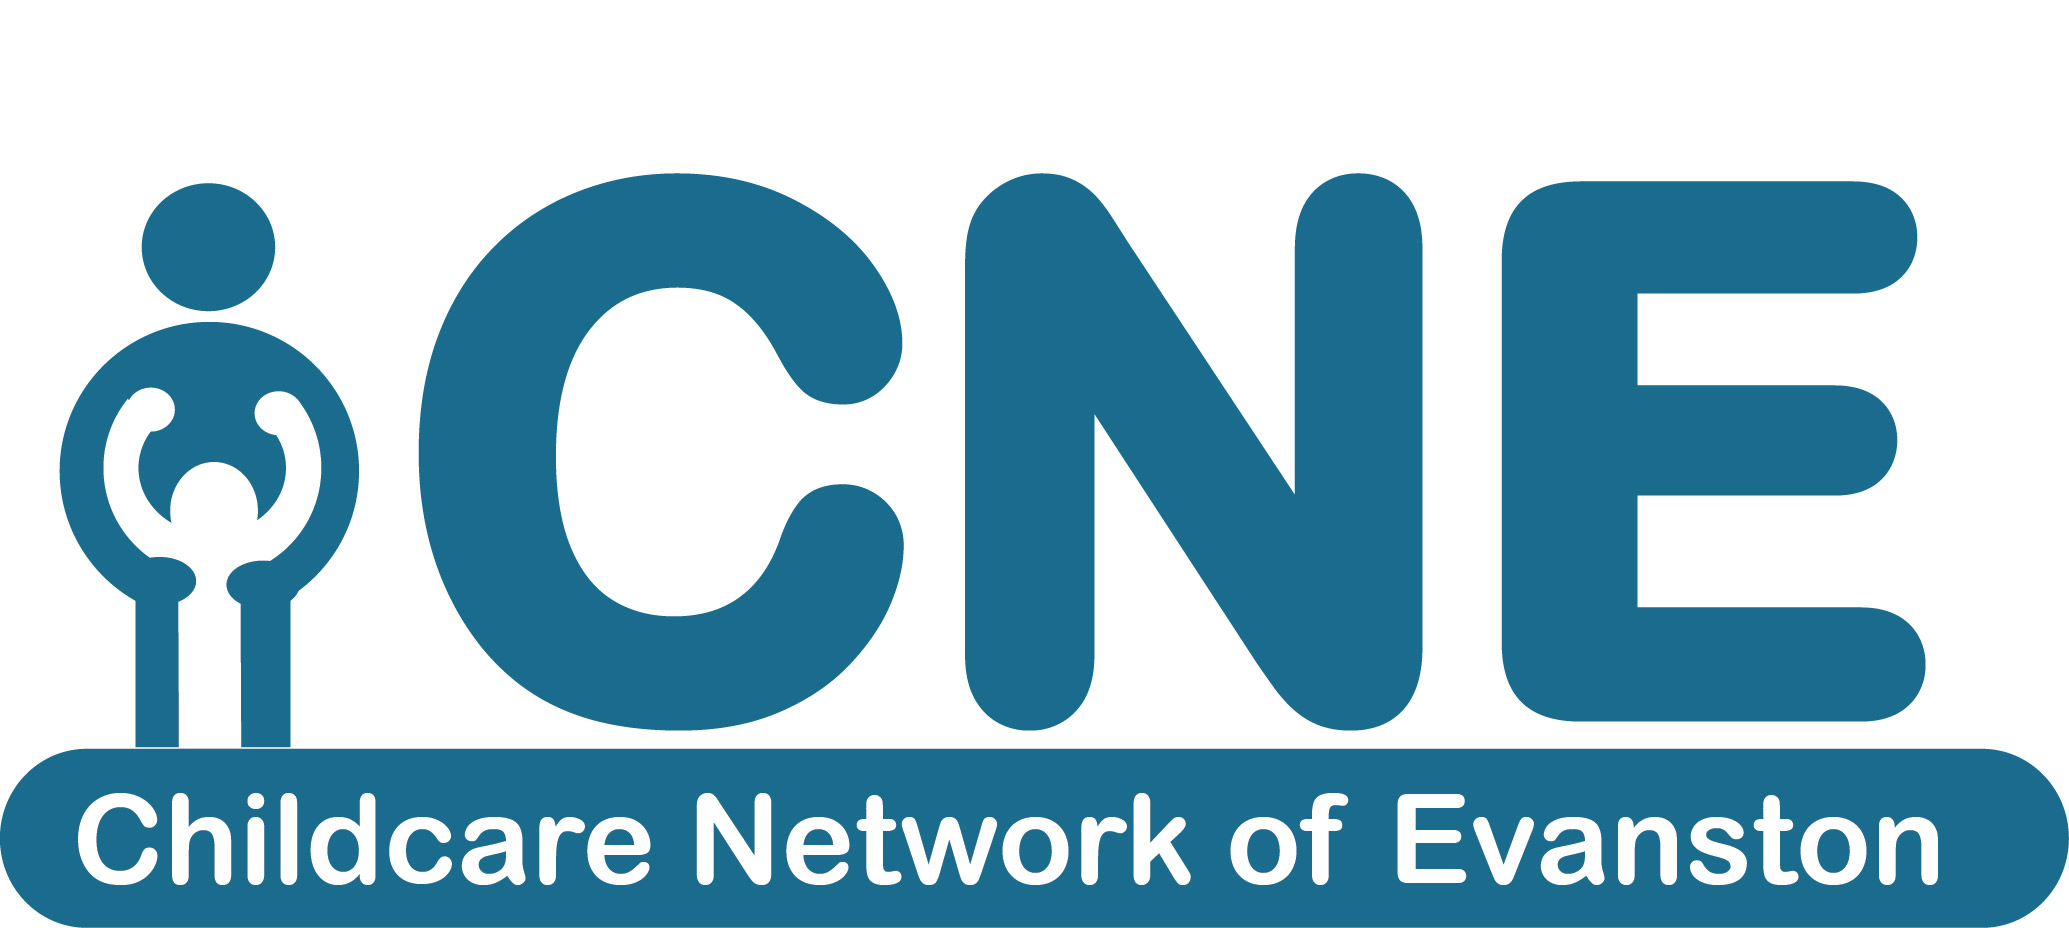 Childcare Network Of Evanston's Logo